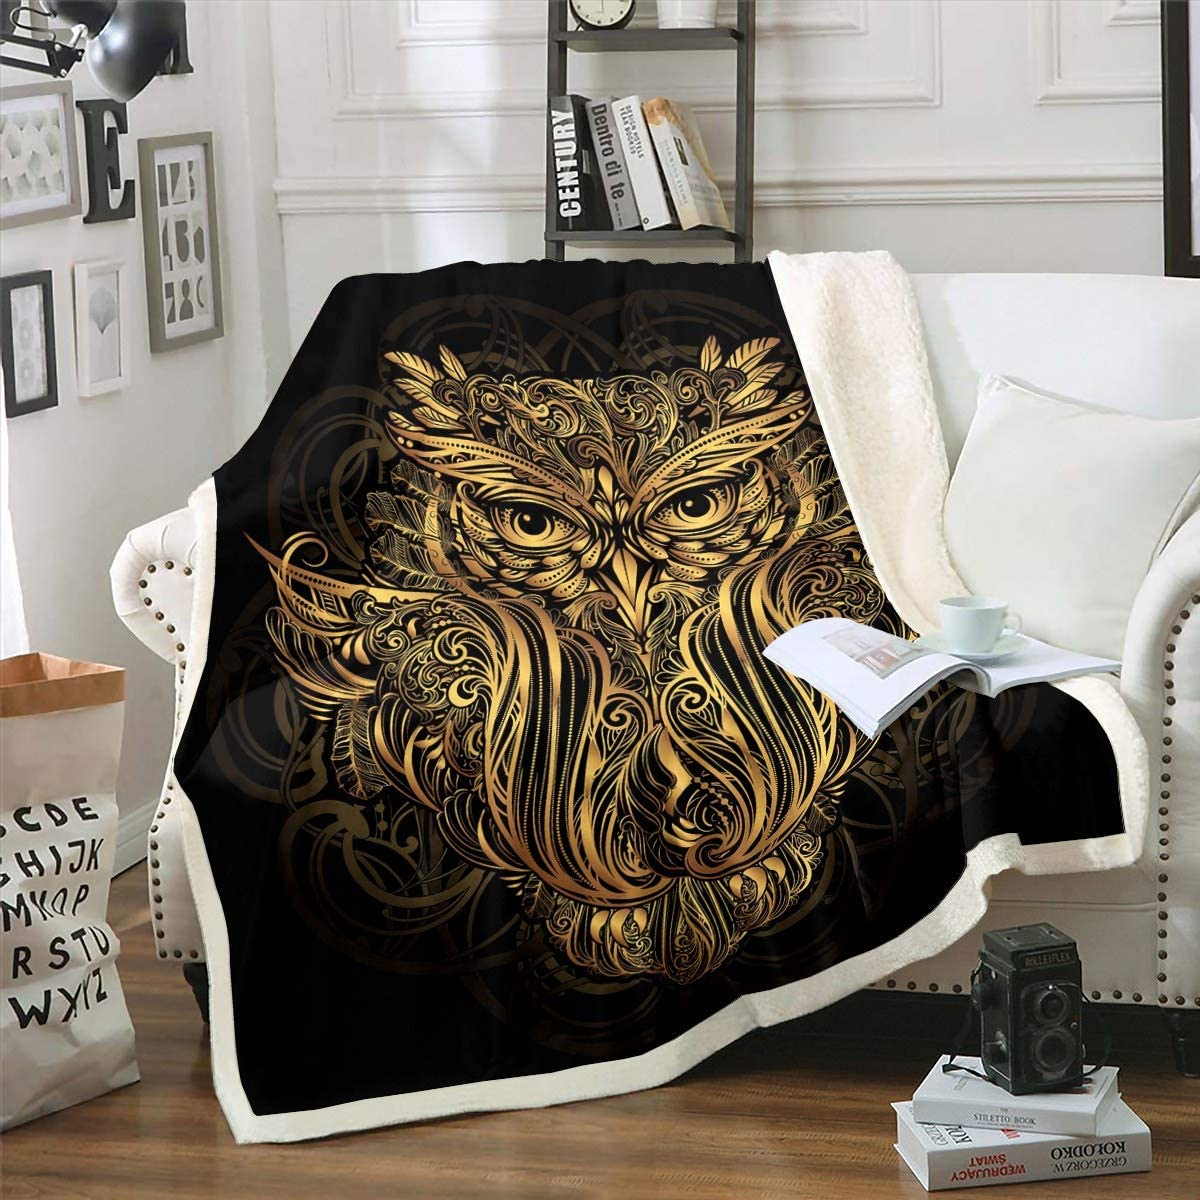 Bohemian Tribal Plush Blanket Nippon regular agency Chic Special price for a limited time Sherpa Illustration Blank Owl